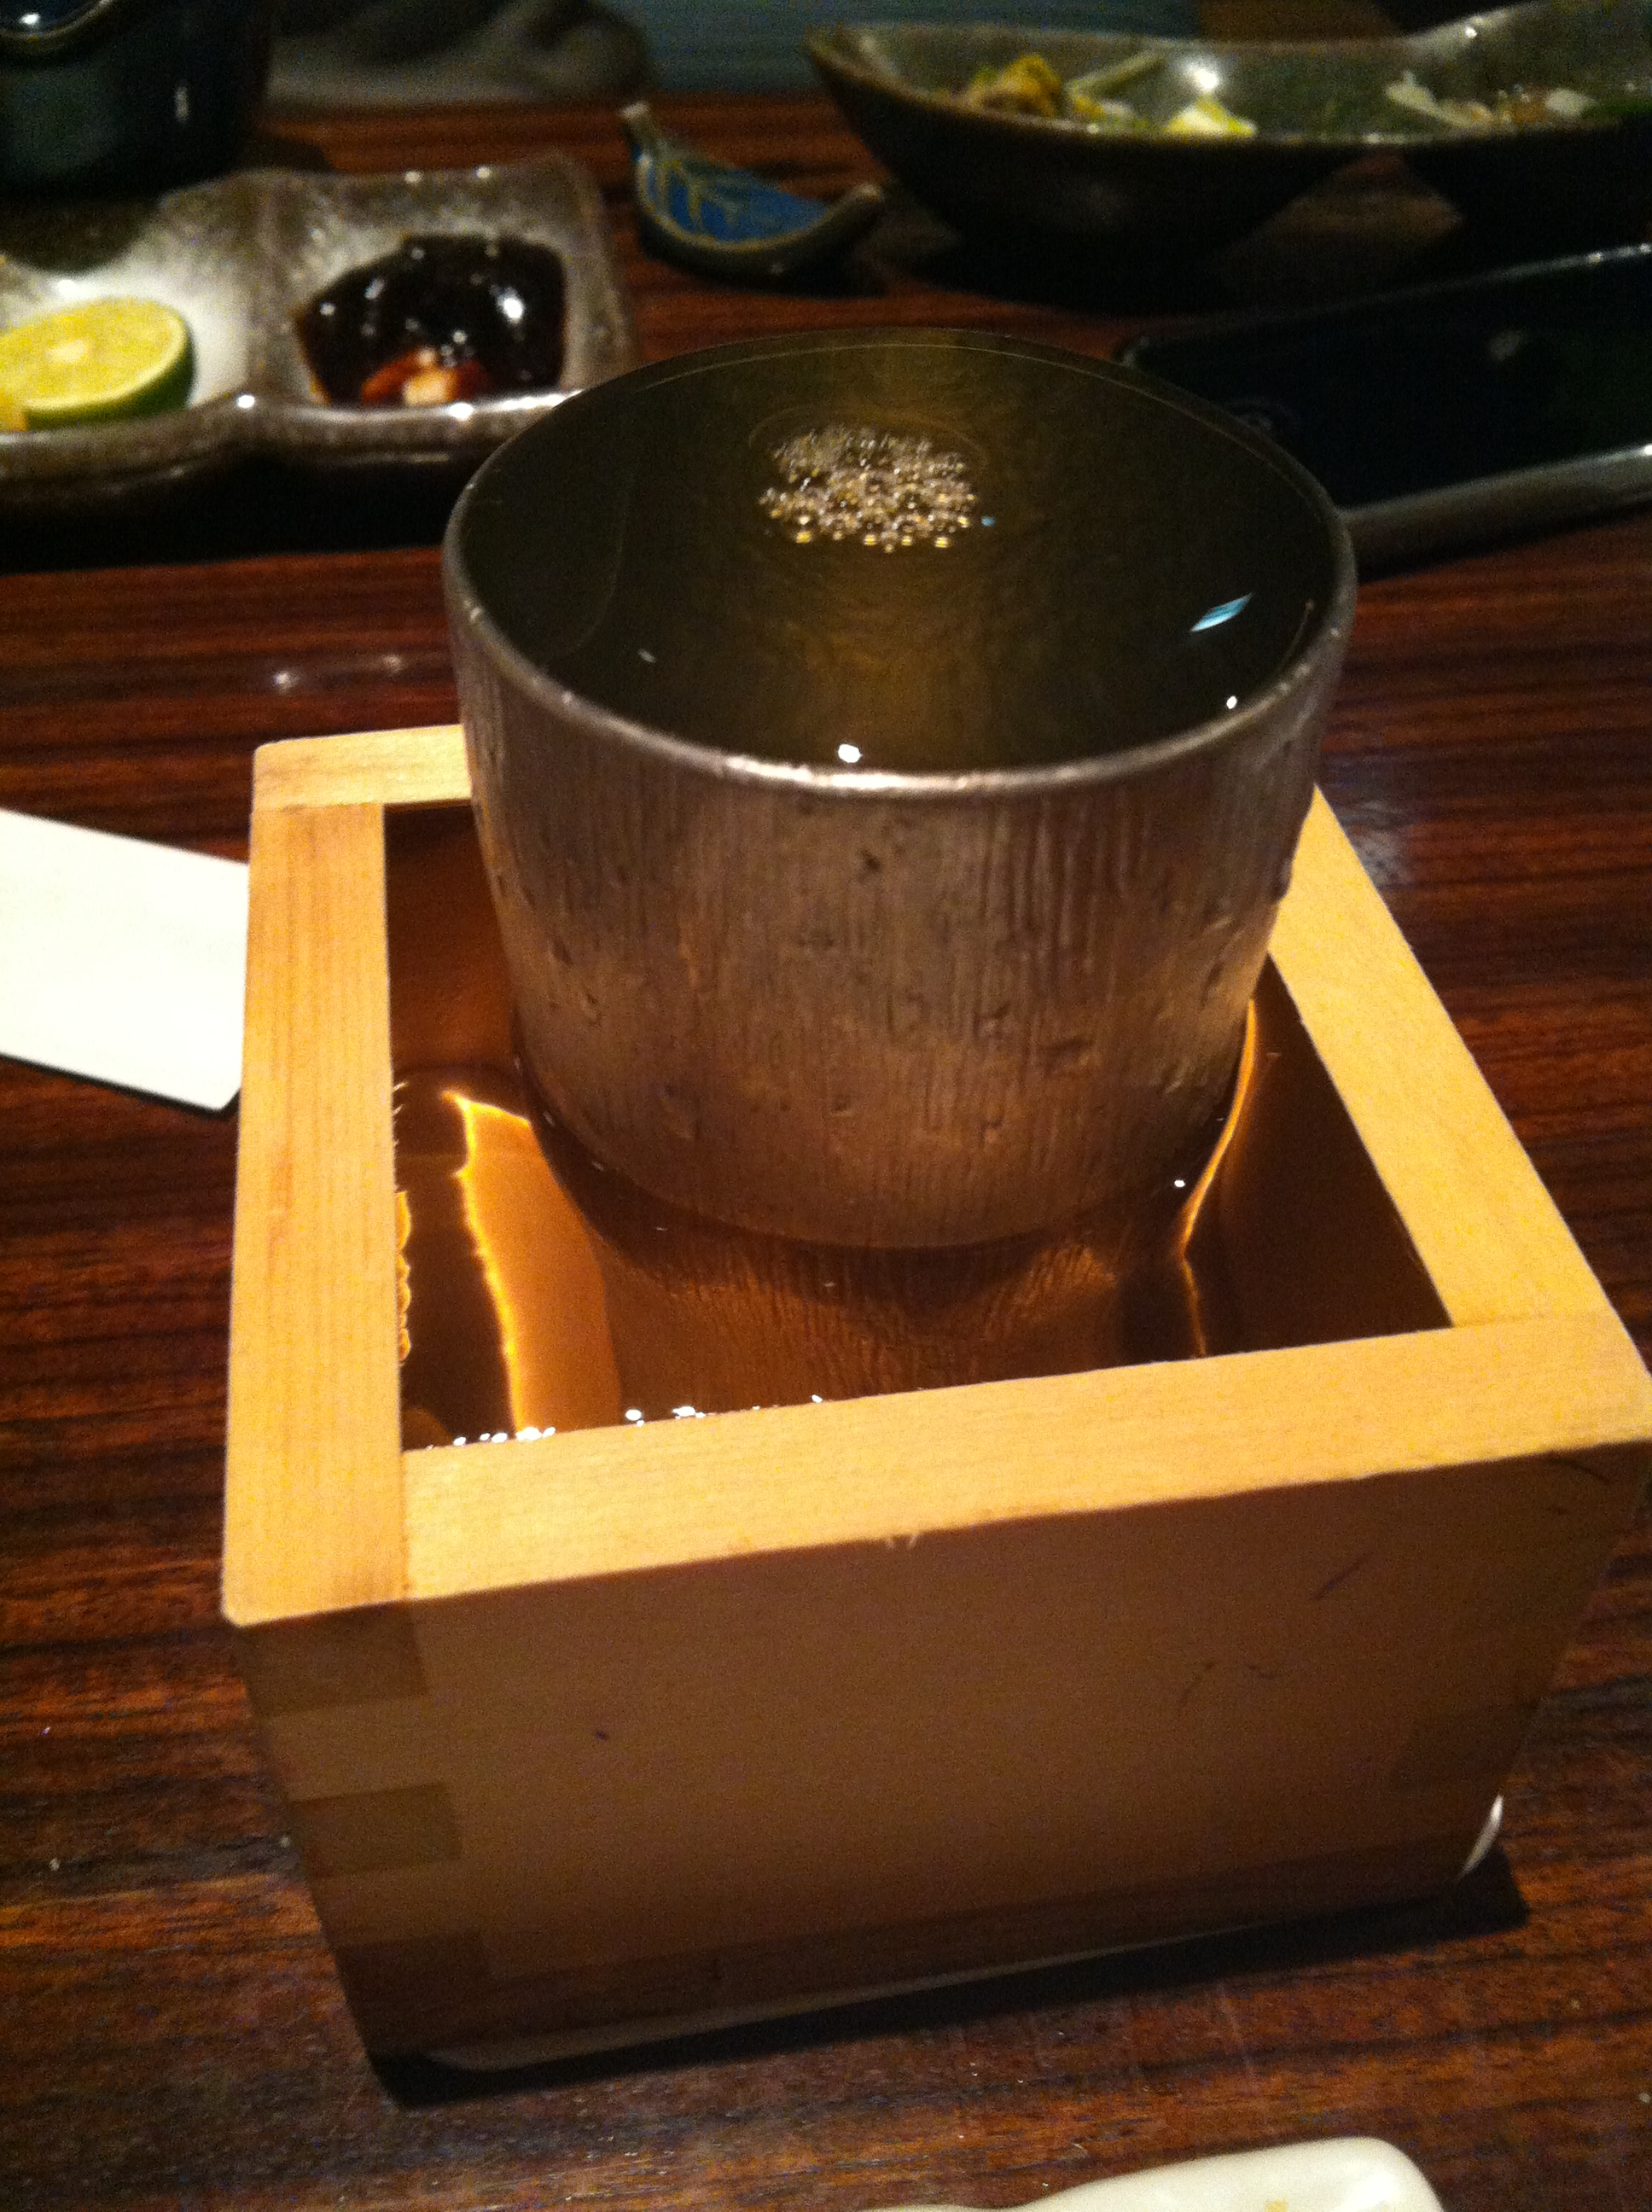 They pour their sake VERY generously